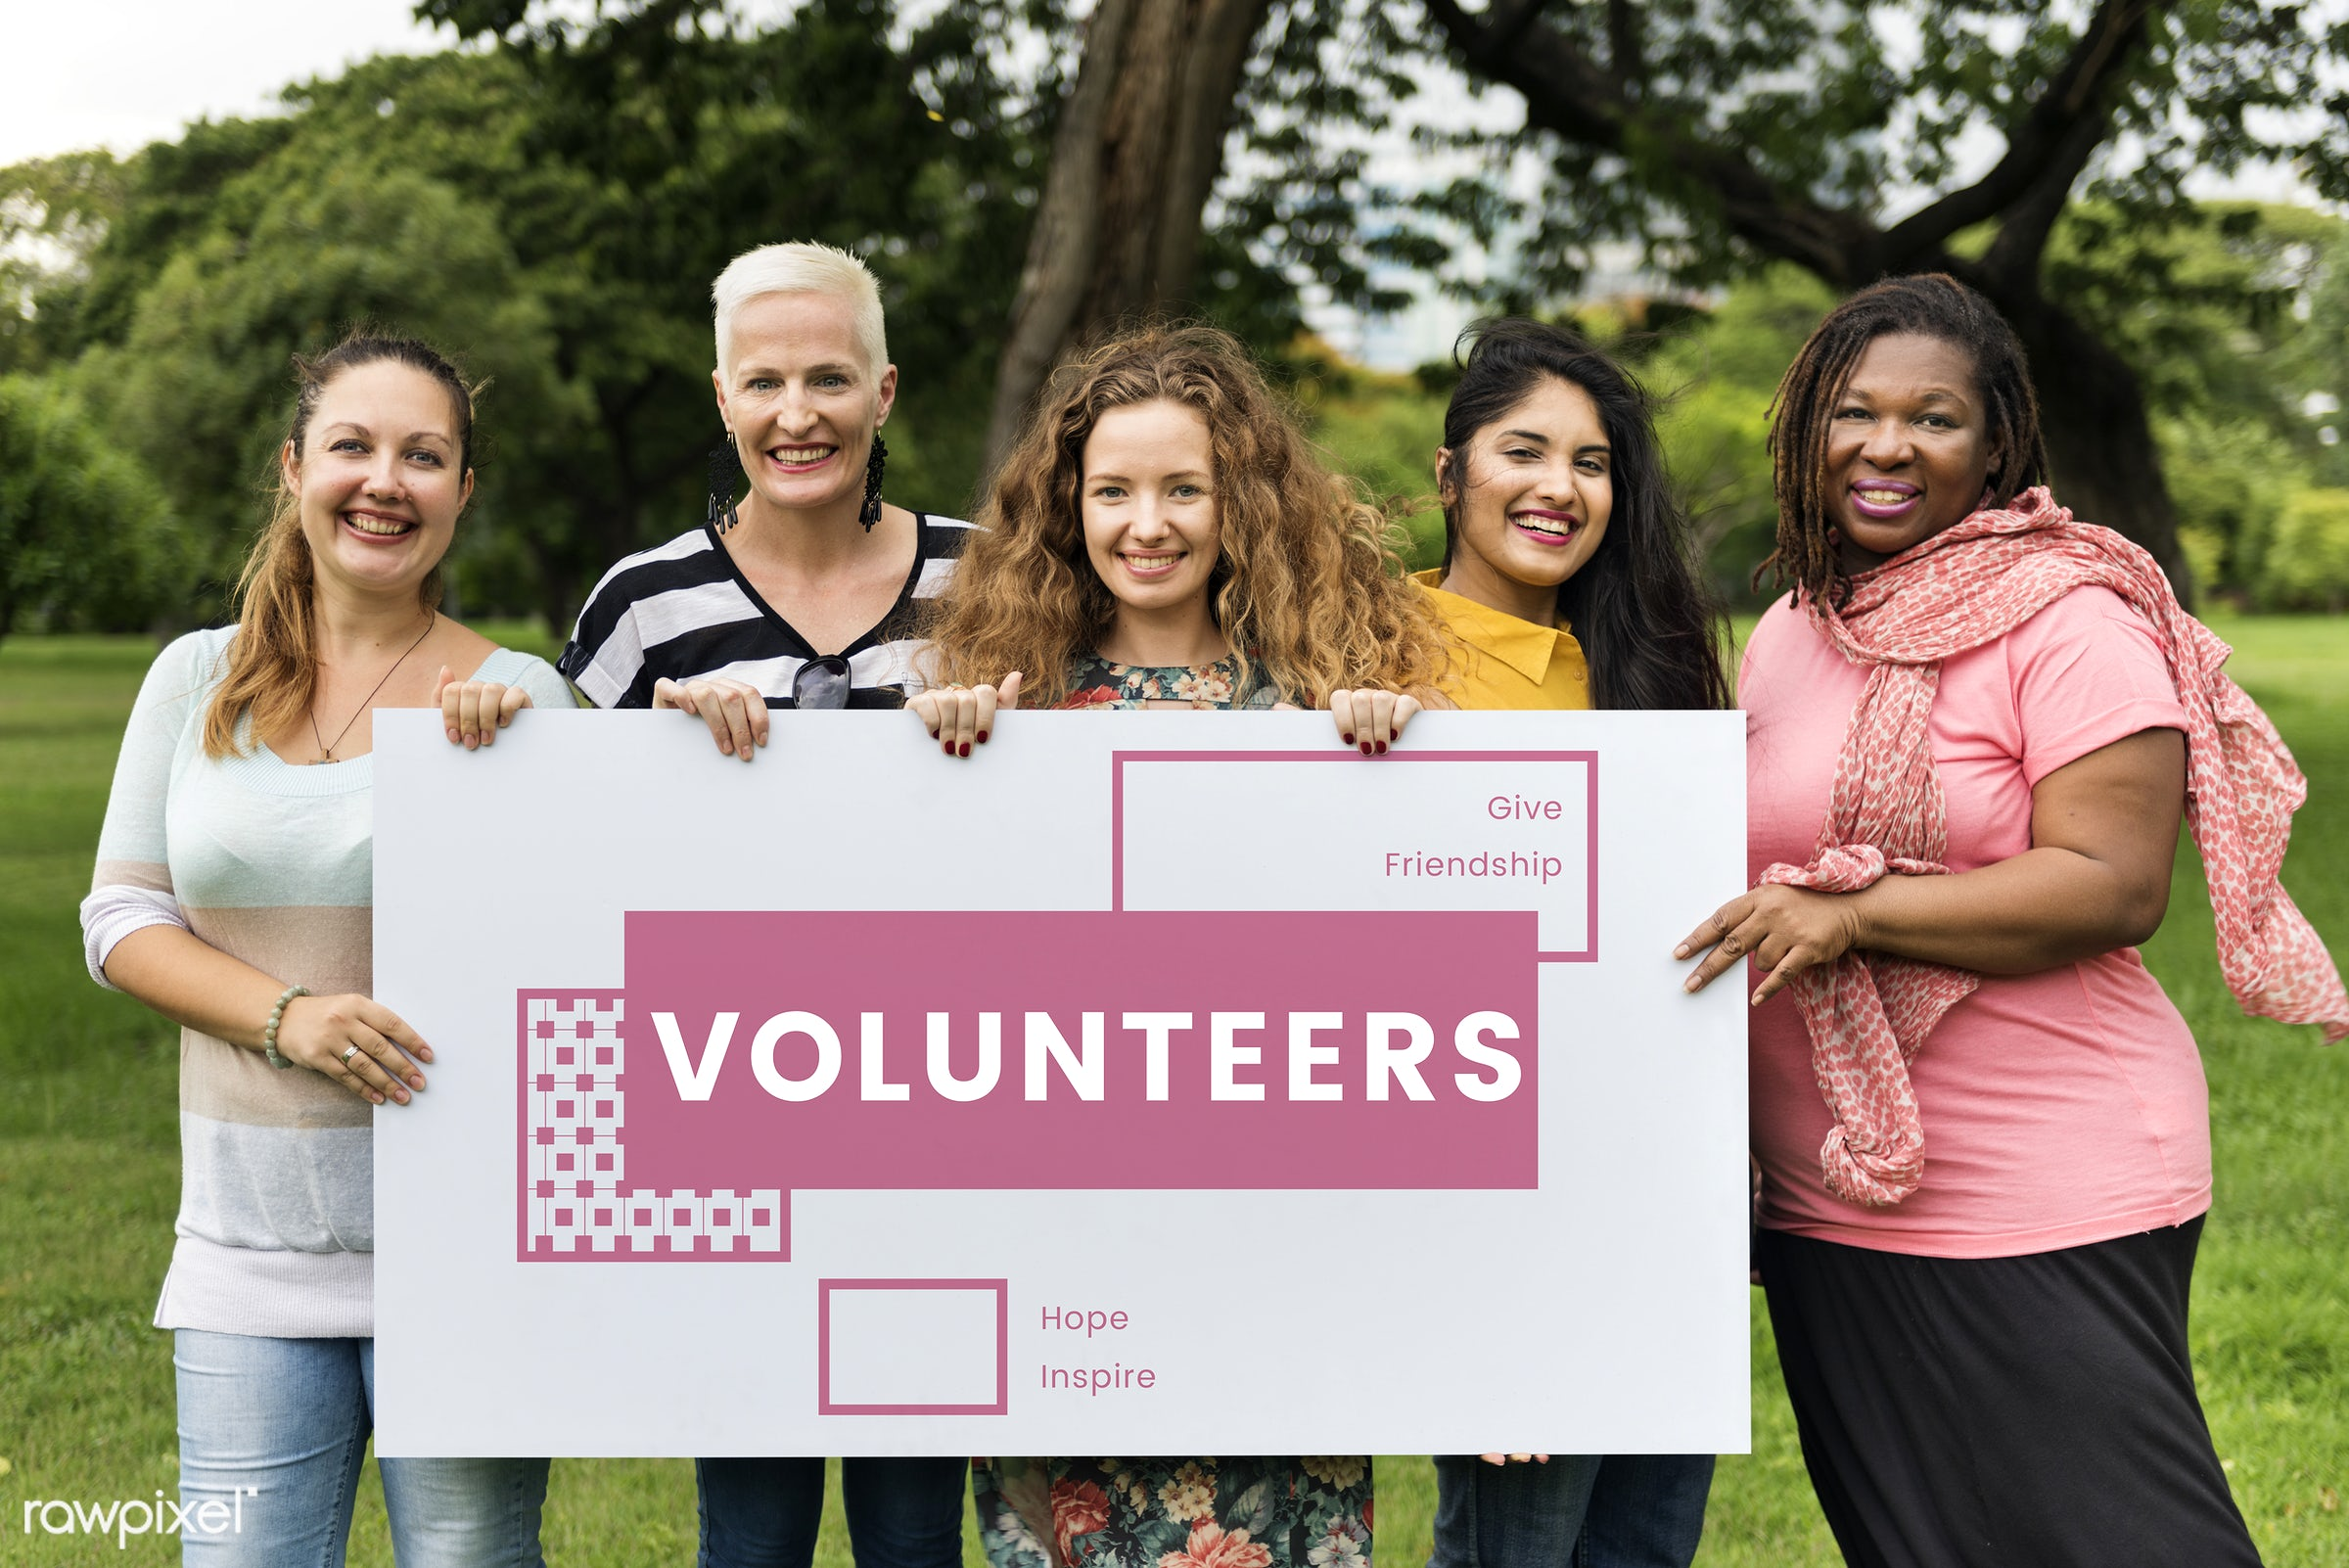 Women volunteers - happy, donate, happiness, adult, card, cares, community, community service, cooperation, diversity,...